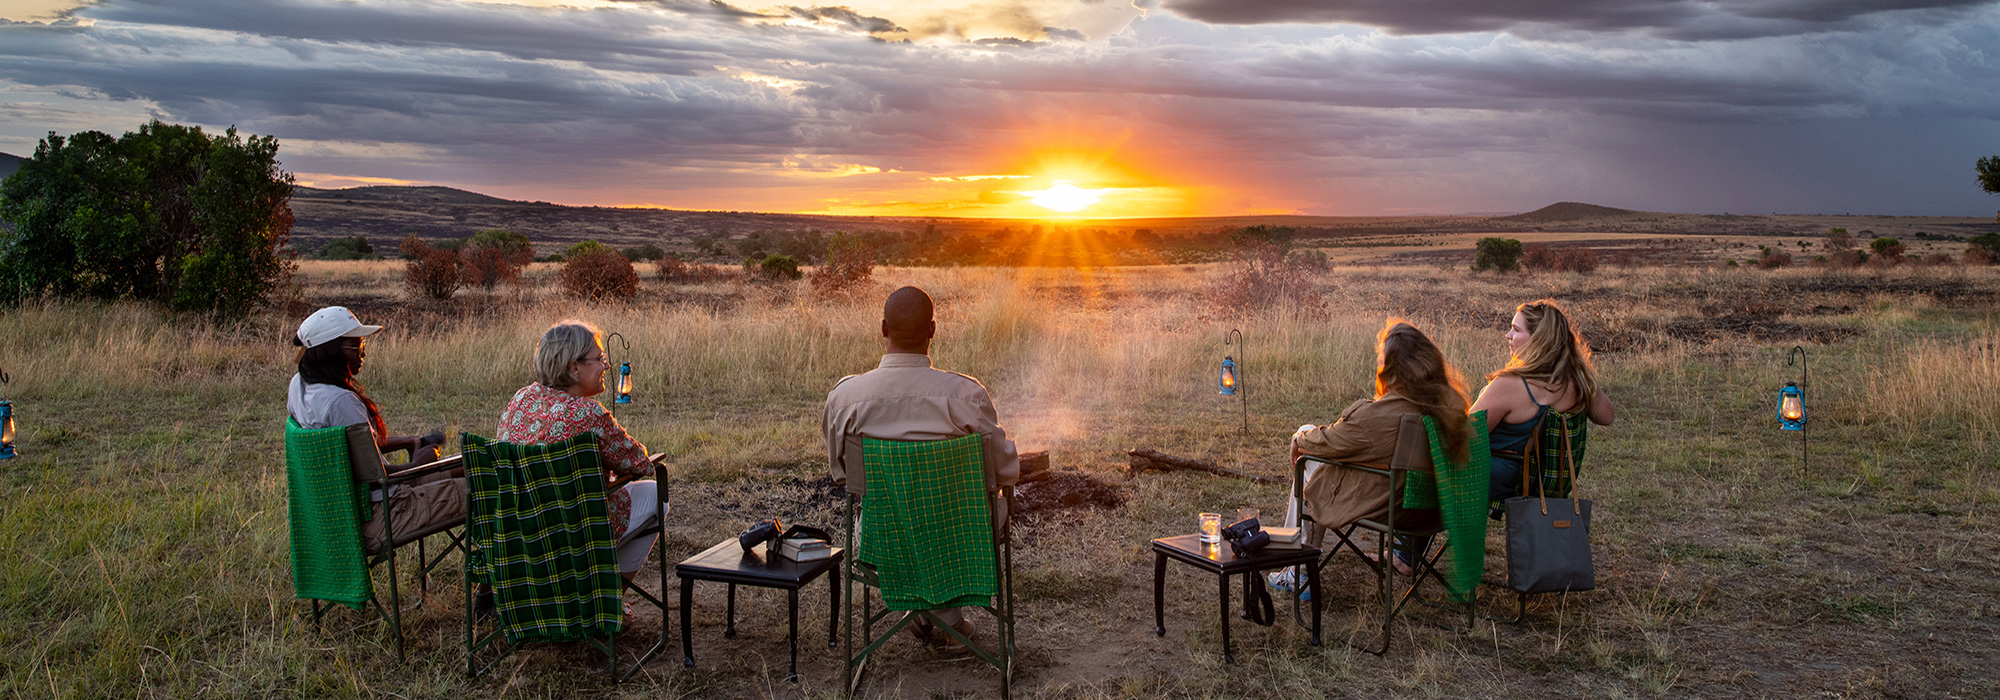 Sundowners at Sand River